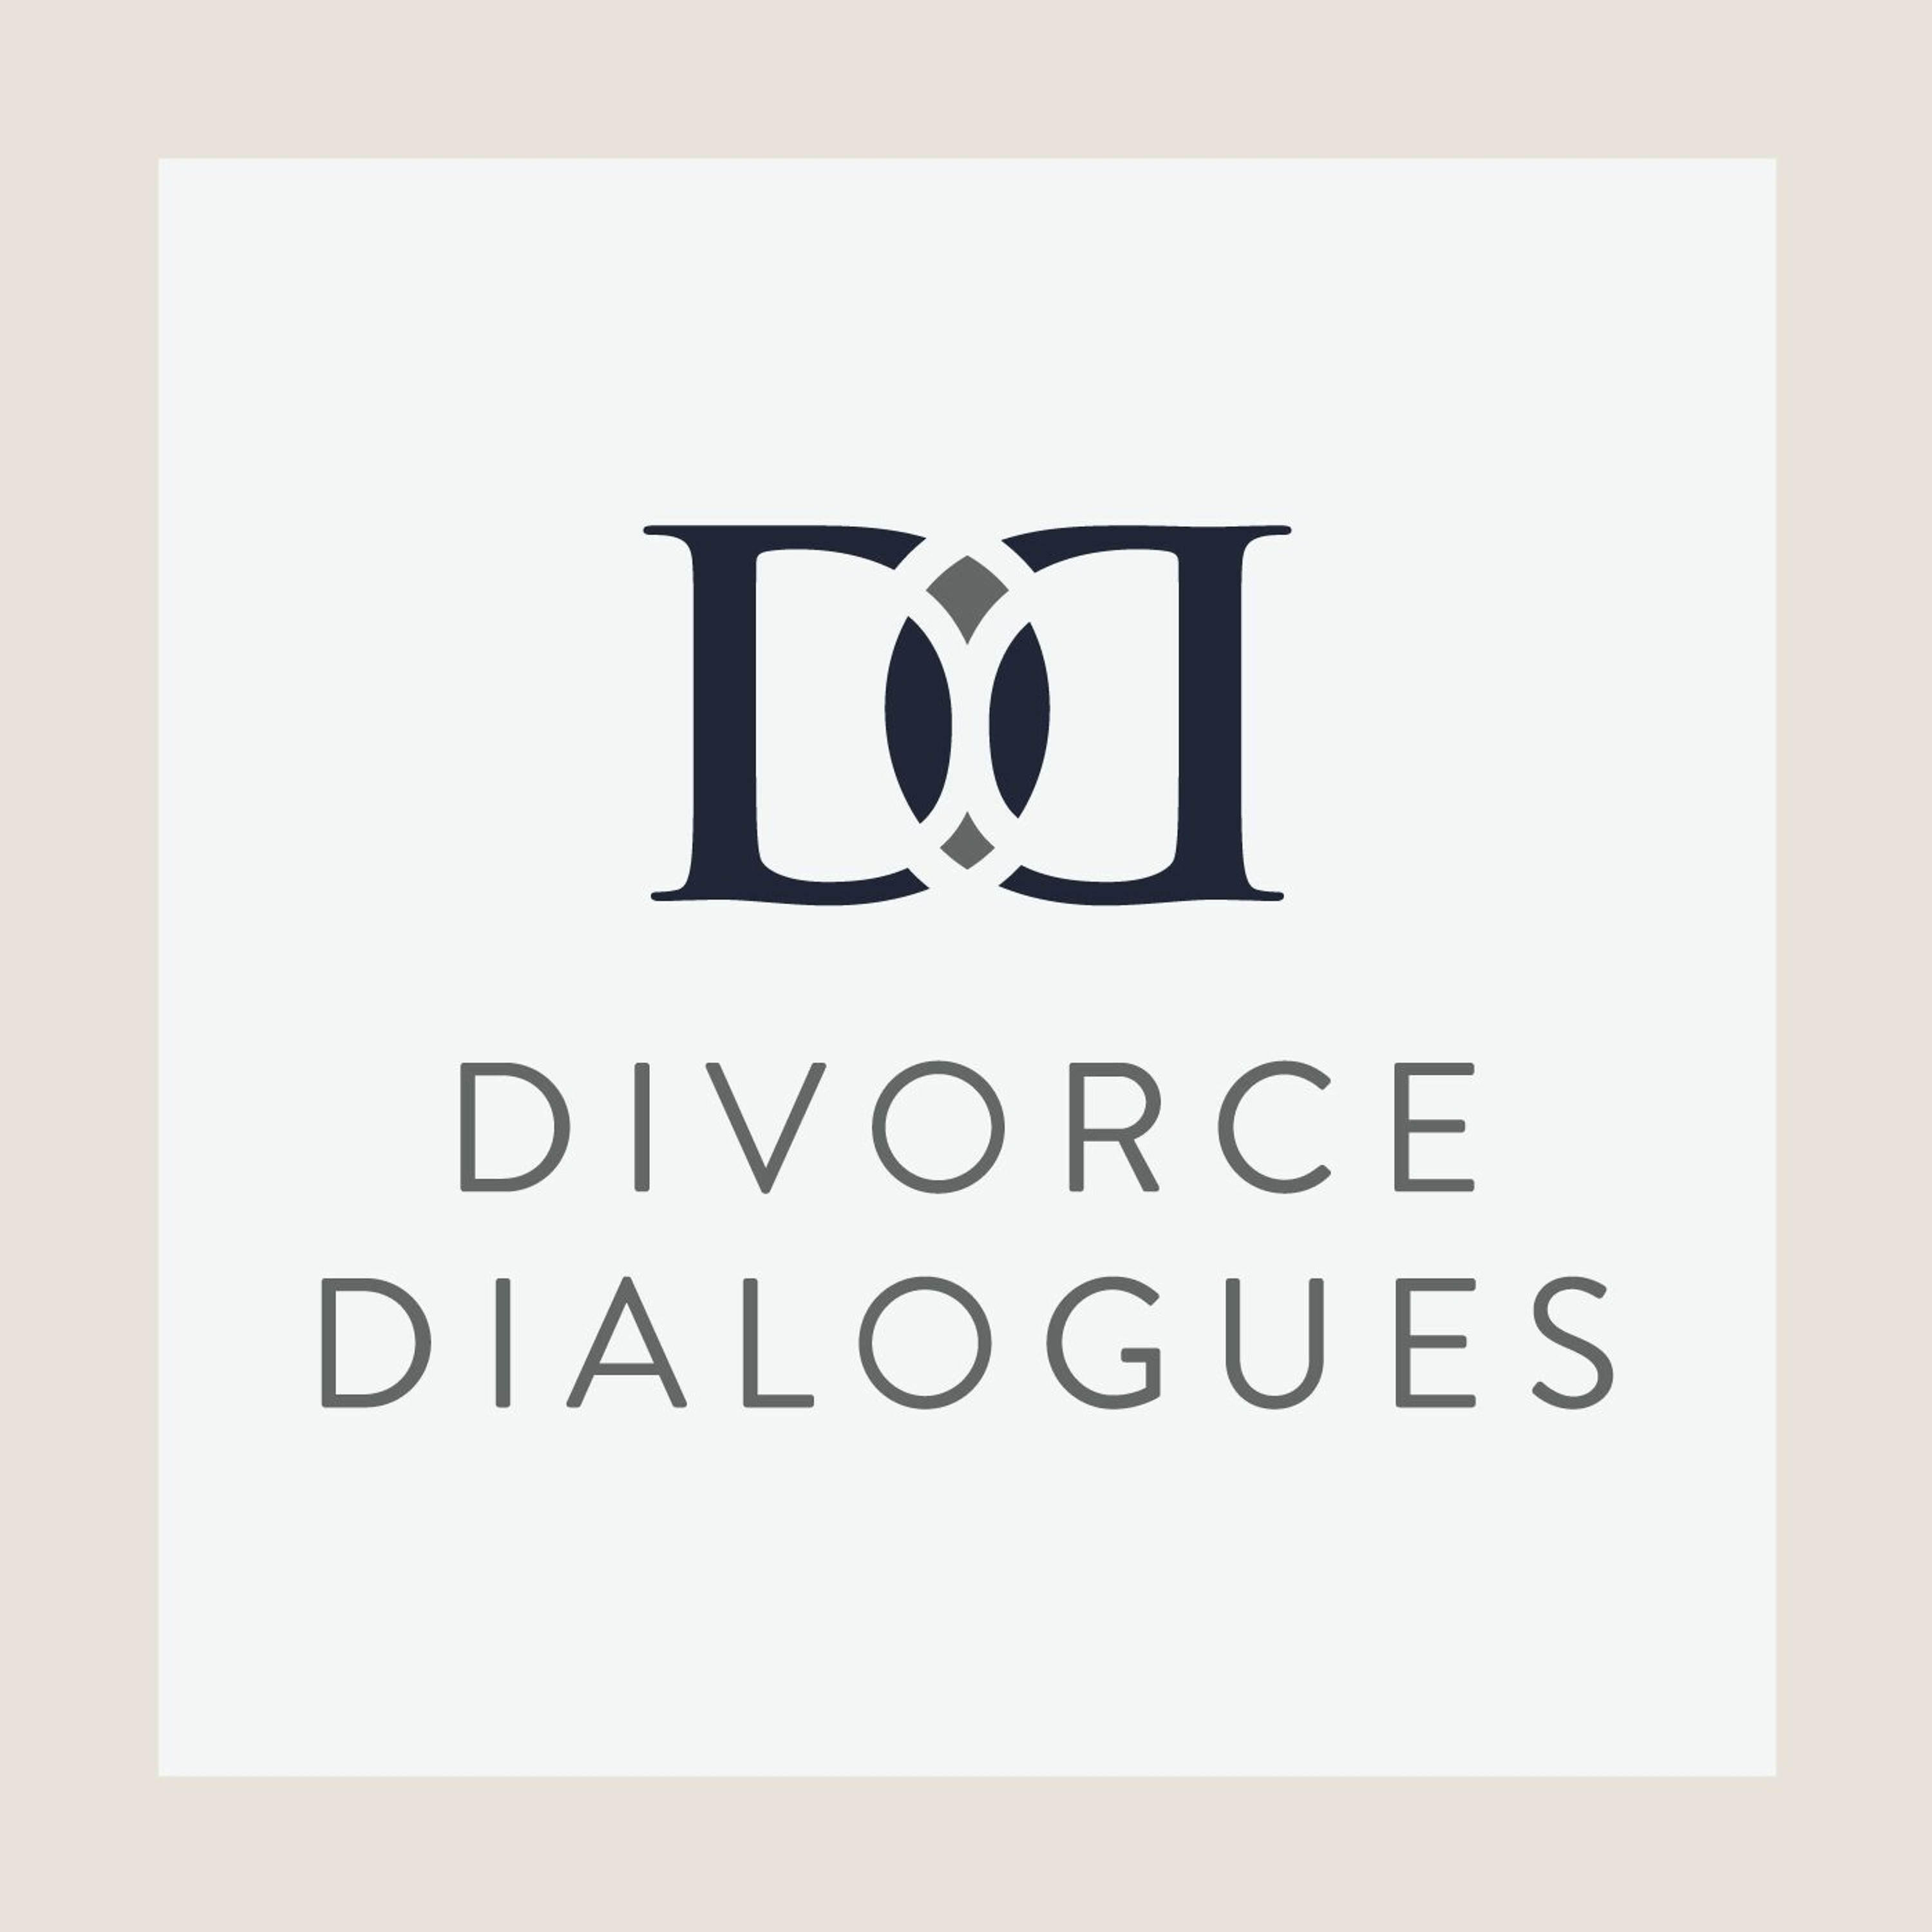 Divorce Dialogues - Dignity, Self-Preservation and Conflict Resolution in Relationships with Donna Hicks